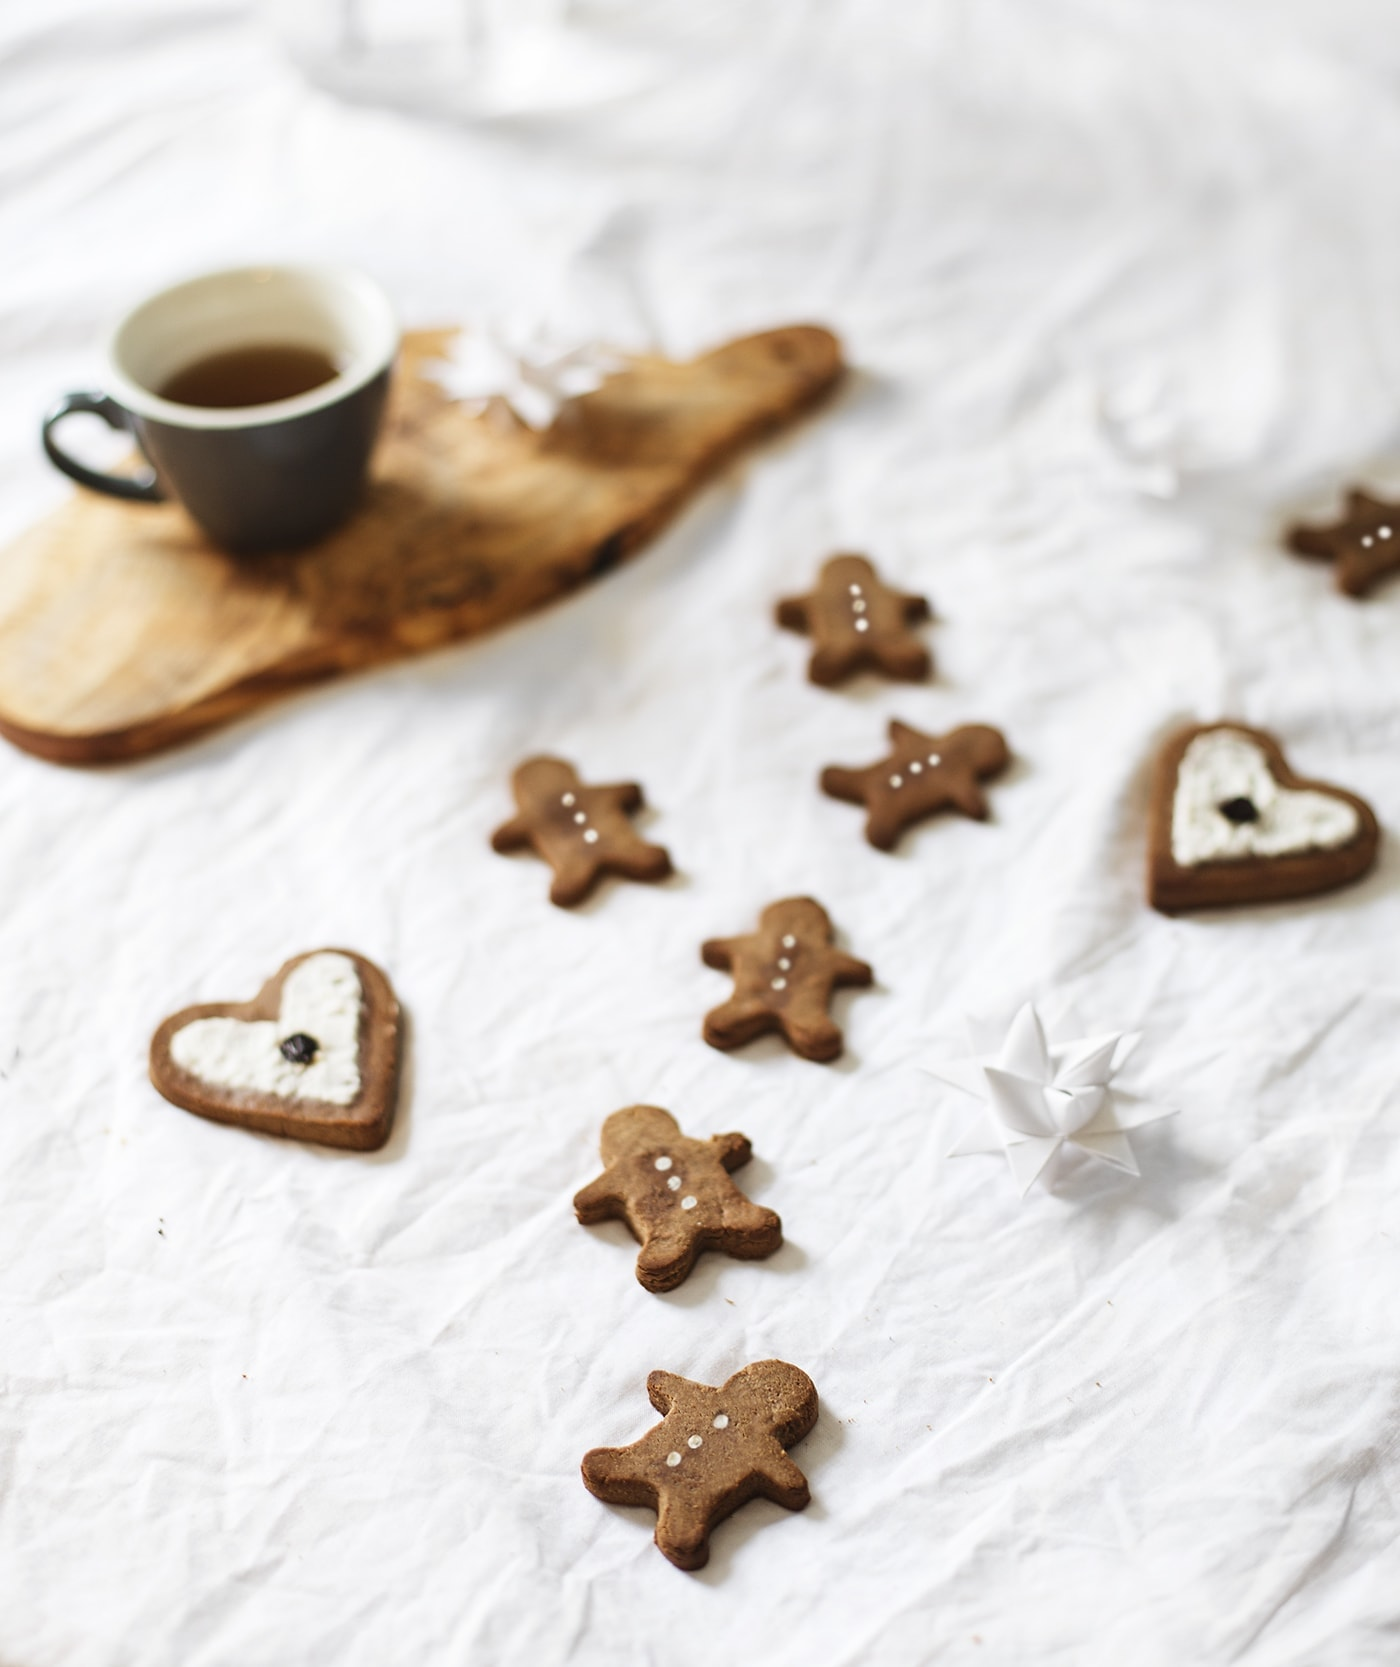 Paleo chestnut flour gingerbread cookies | Christmas sweet treats | gluten free | vegan | refined sugar free